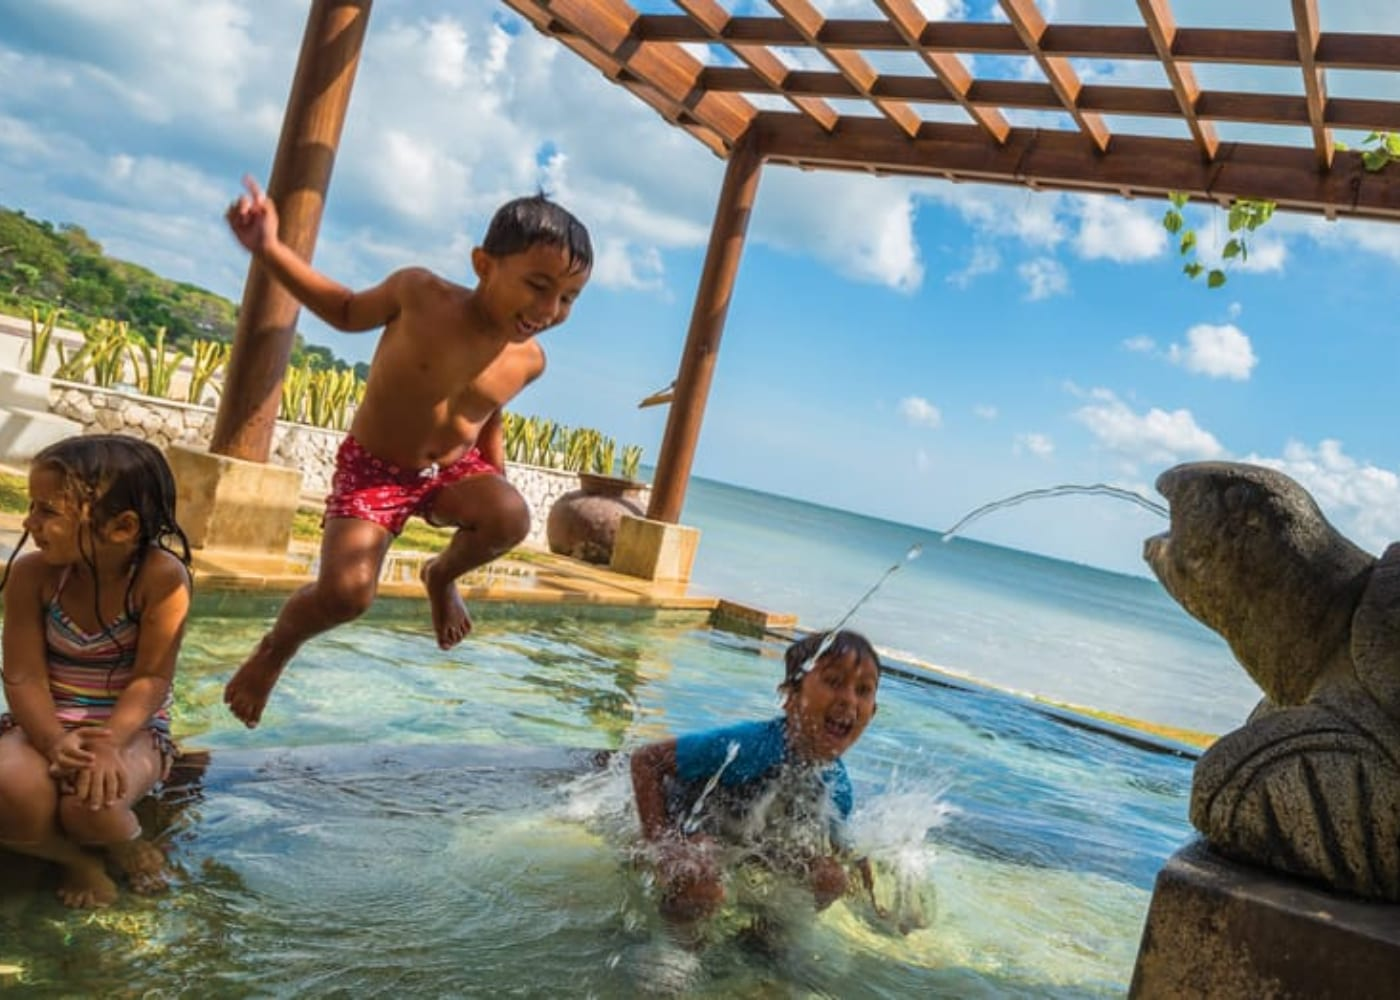 Four Seasons Resort Bali at Jimbaran Bay | luxury hotels for families